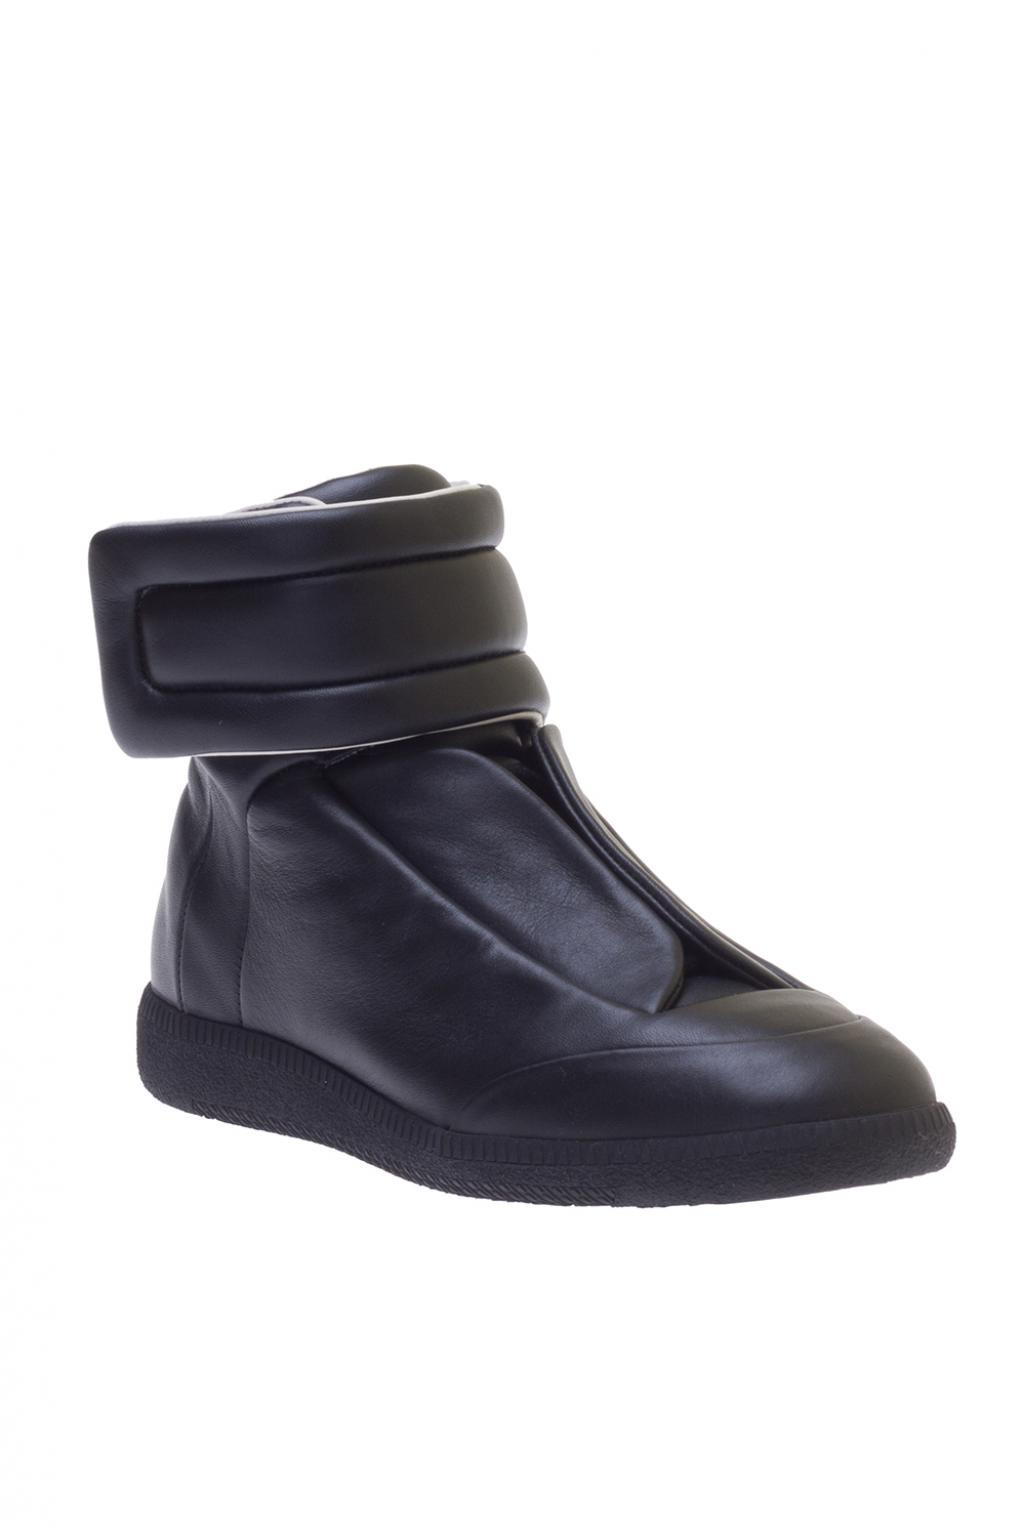 Maison Margiela Leather High-top Sneakers in Black